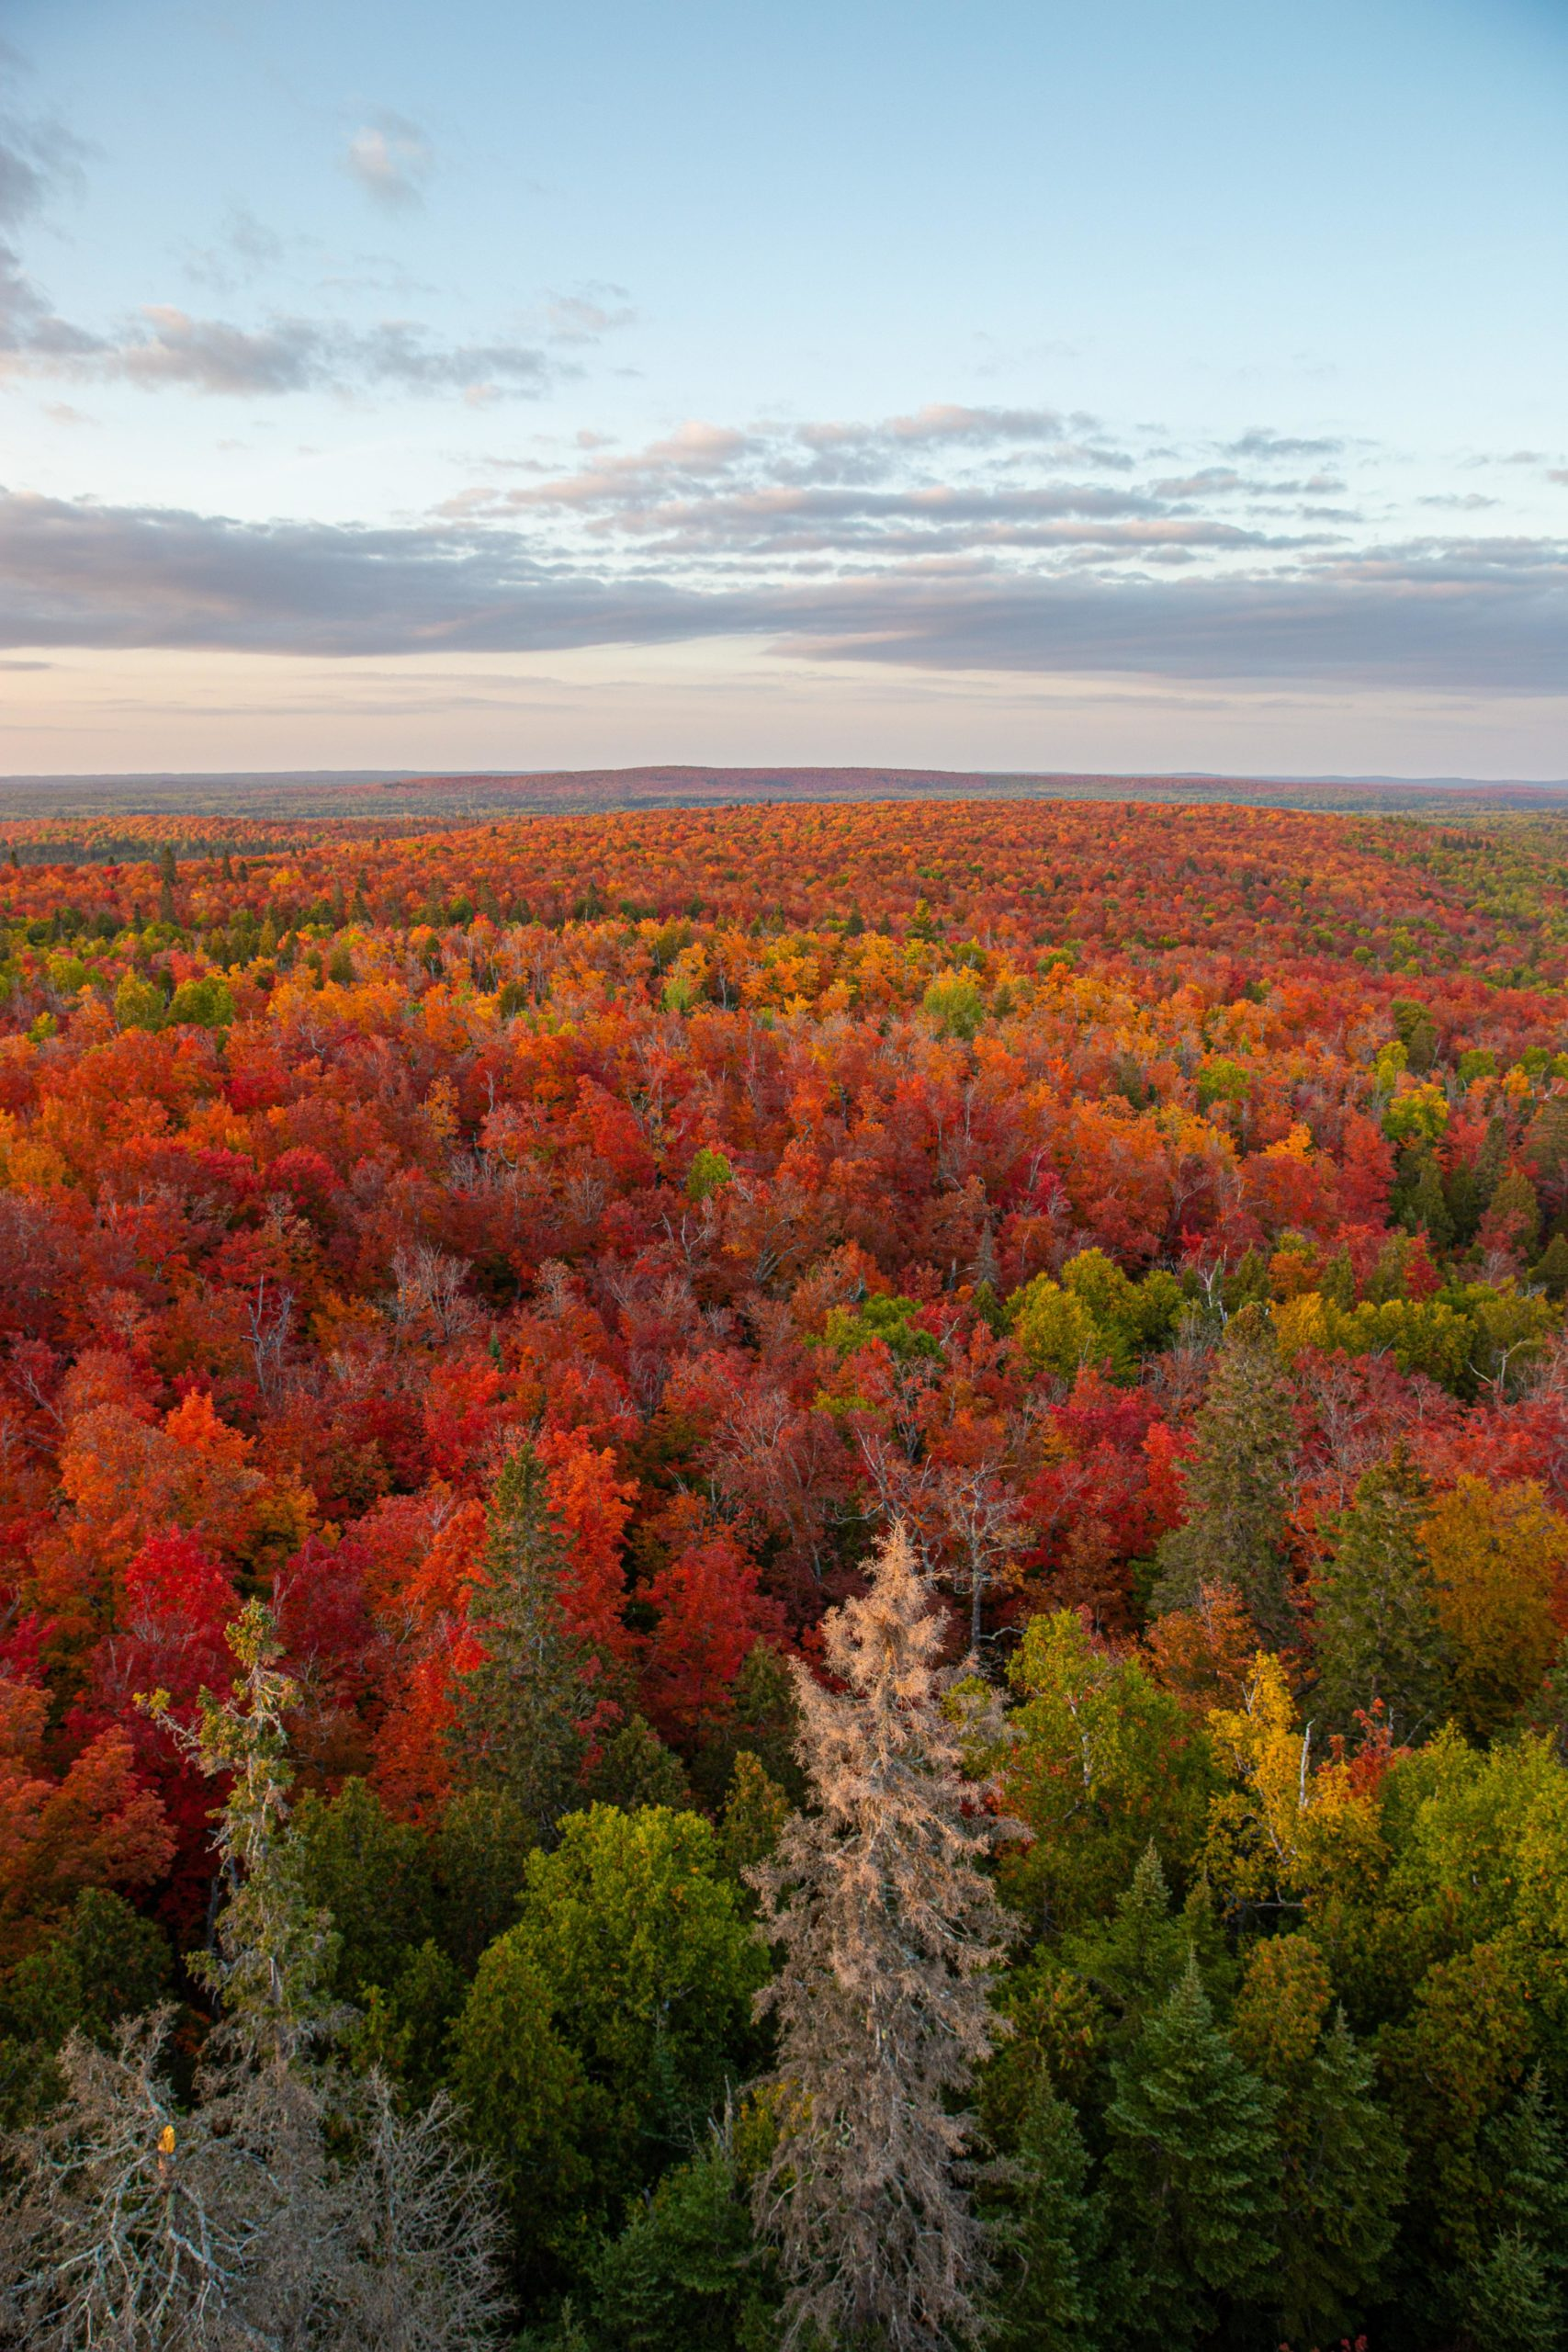 Fall colors at sunset over Minnesota